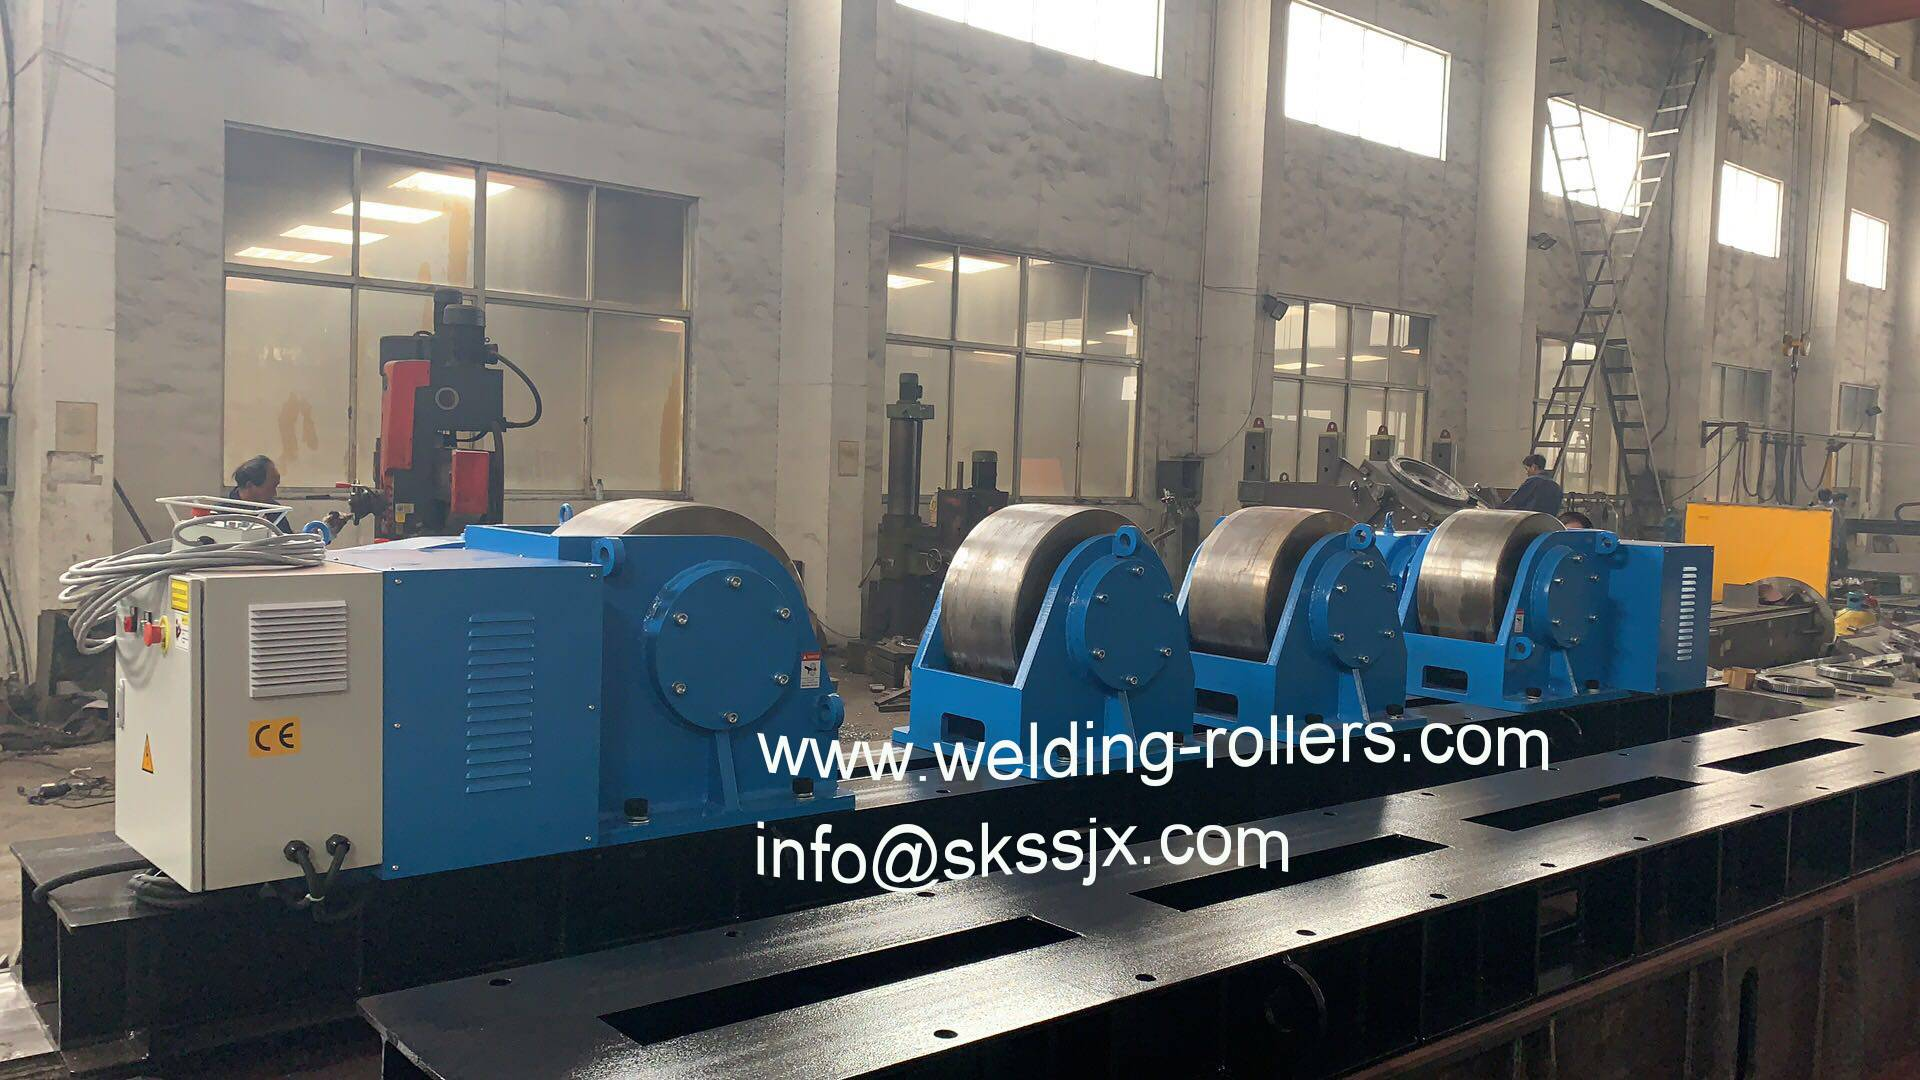 200T welding rollers with steel roller wheels to European market